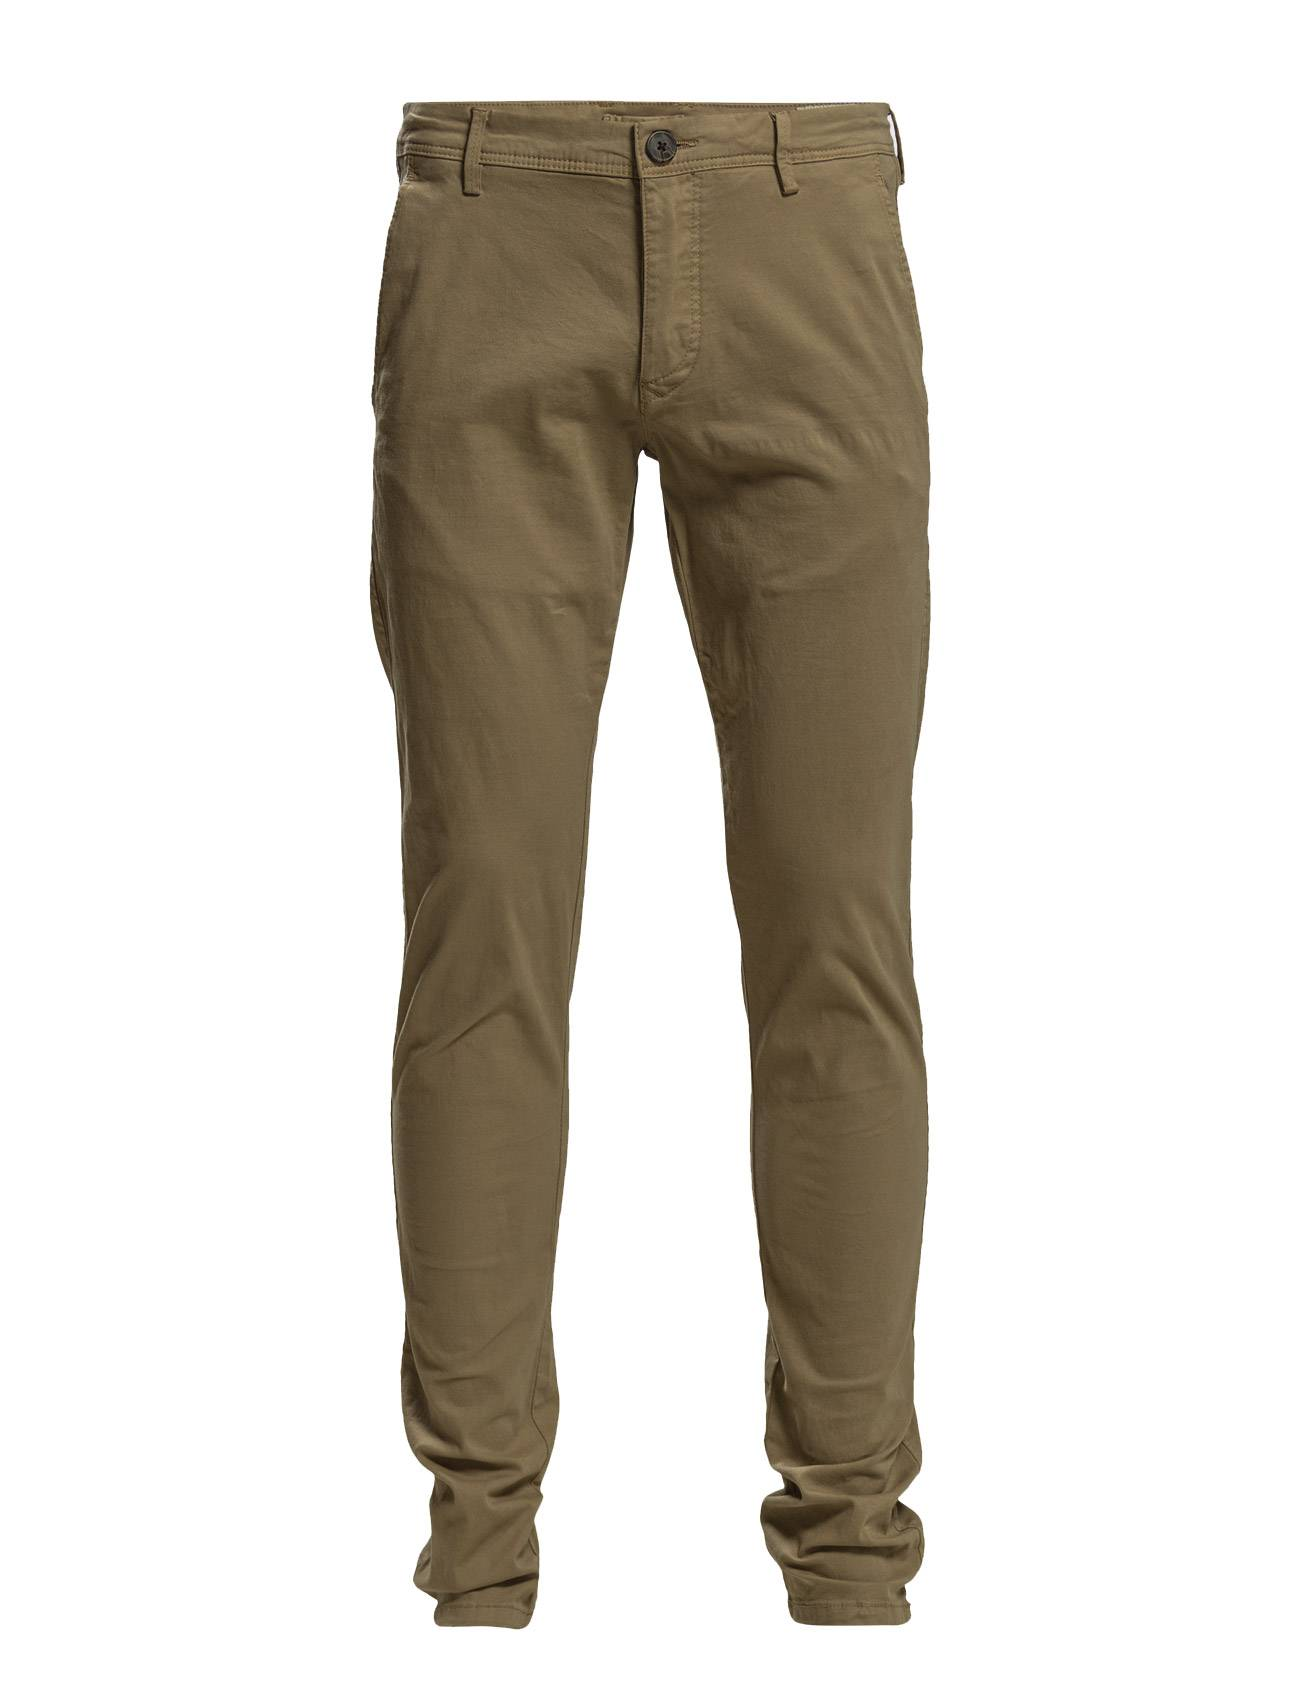 Selected Homme Shhoneluca Greige St Pants Noos